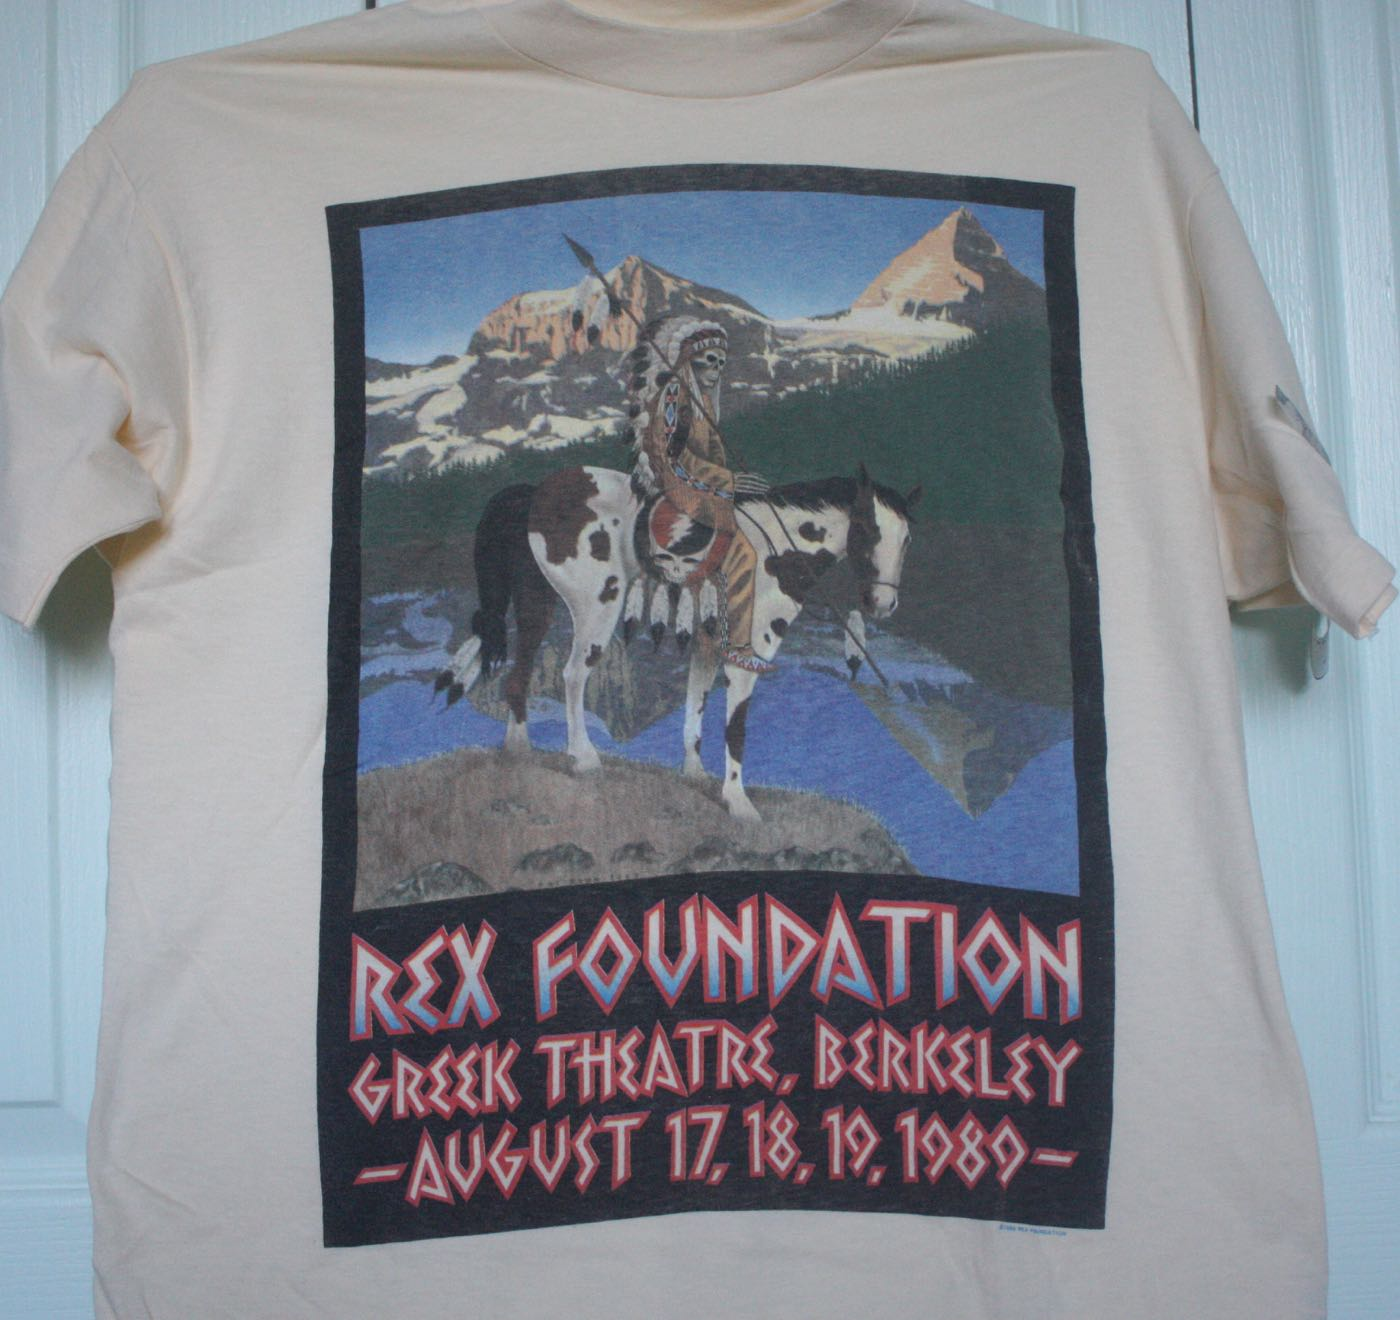 Rex Foundation Benefit Dead Concert Tee